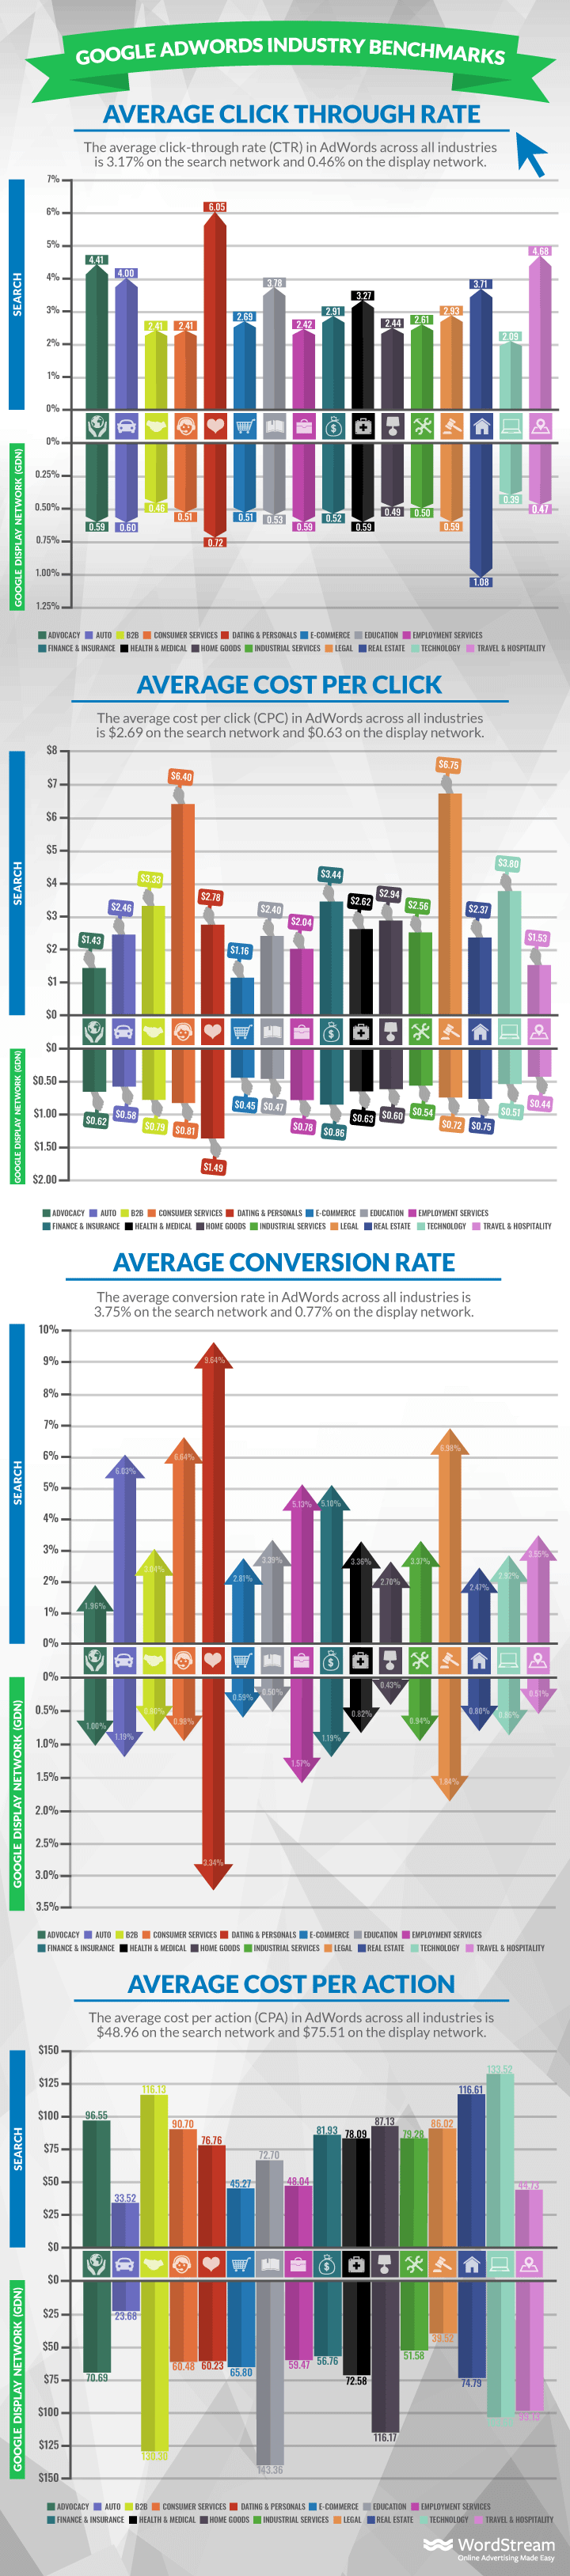 google adwords benchmarks by industry